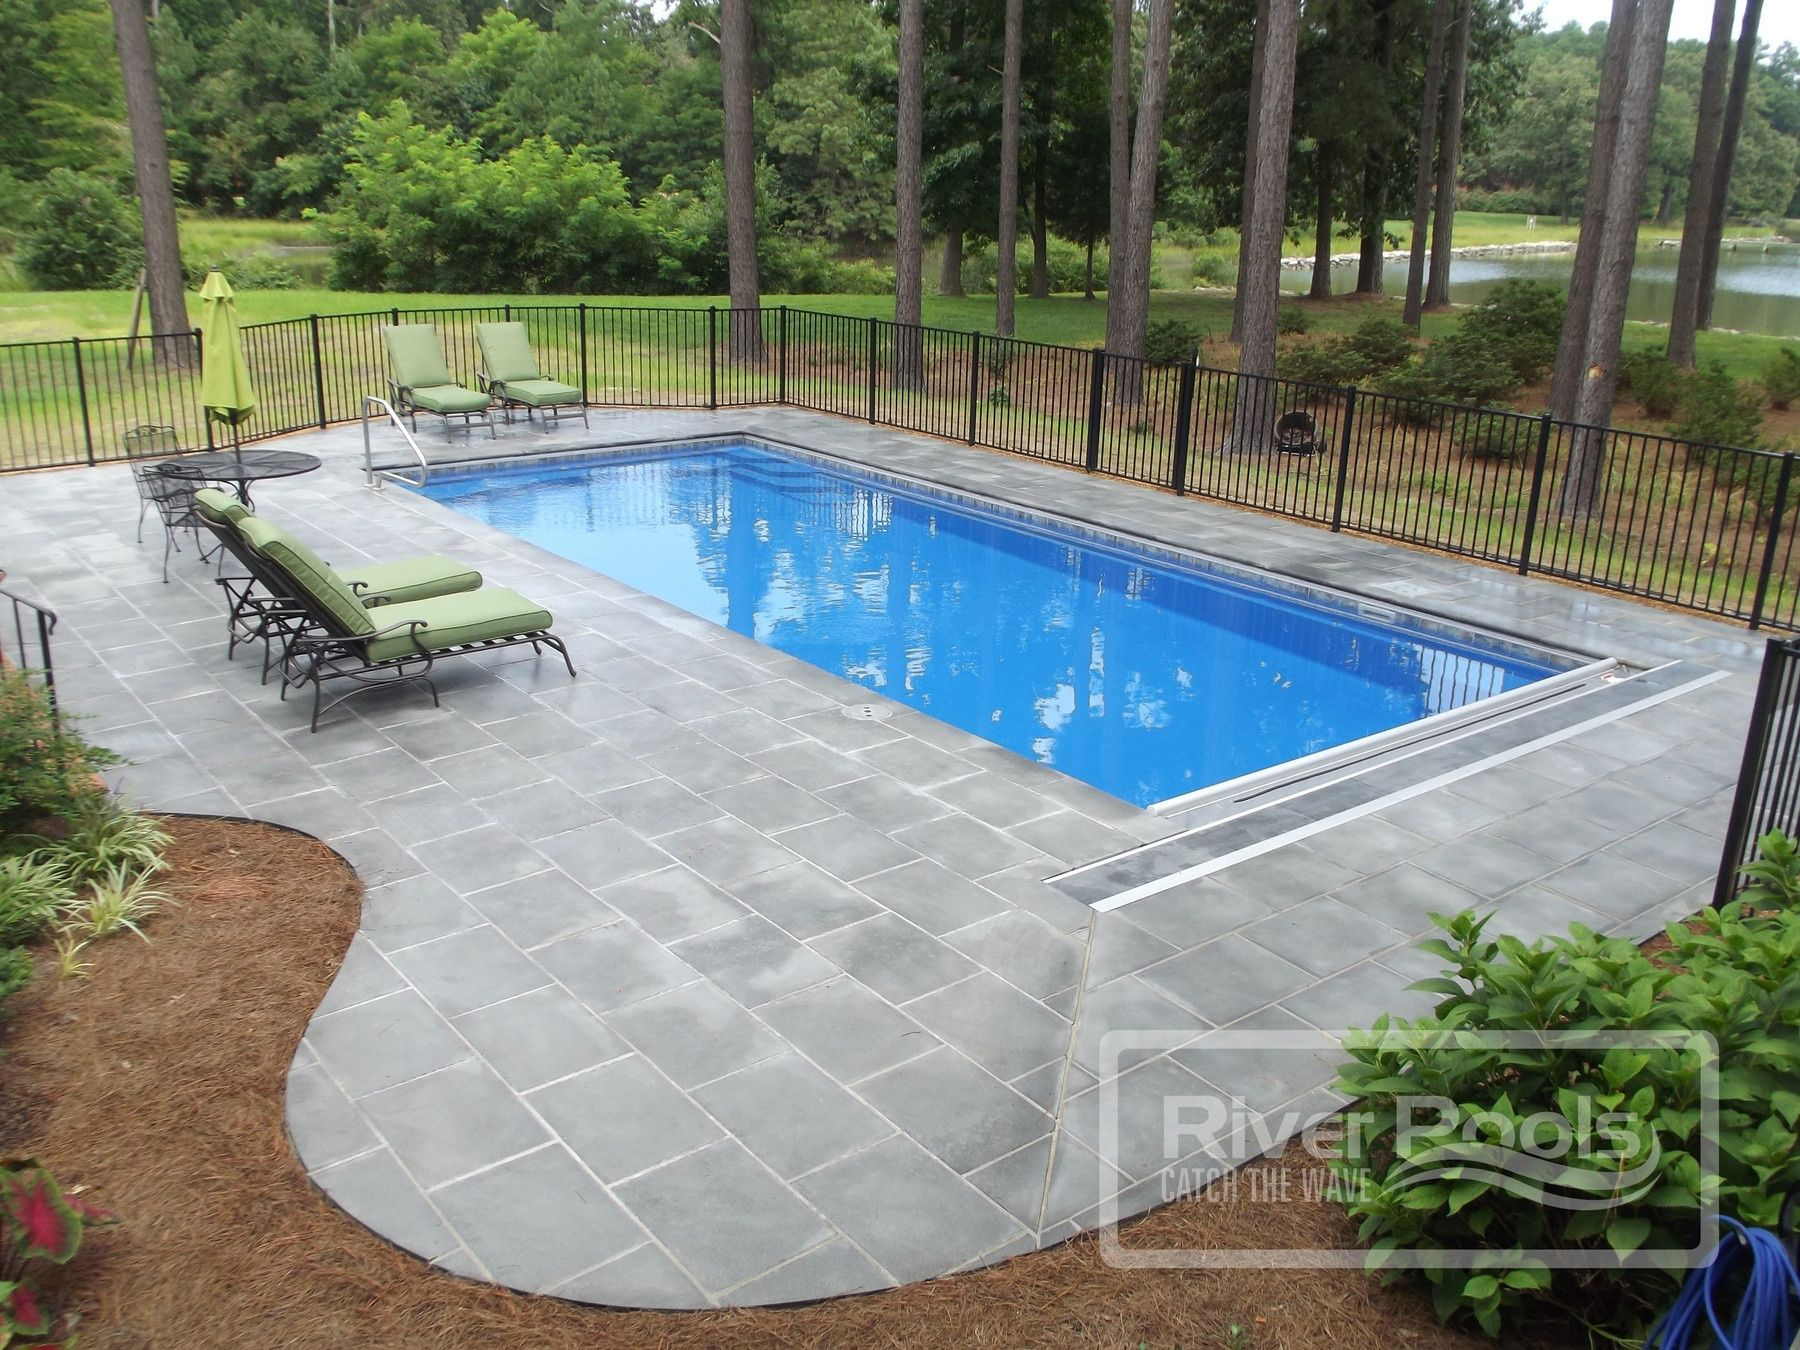 Looking For A Fiberglass Pool? Browse Our Collection Of Pools, Patios,  Accessories And